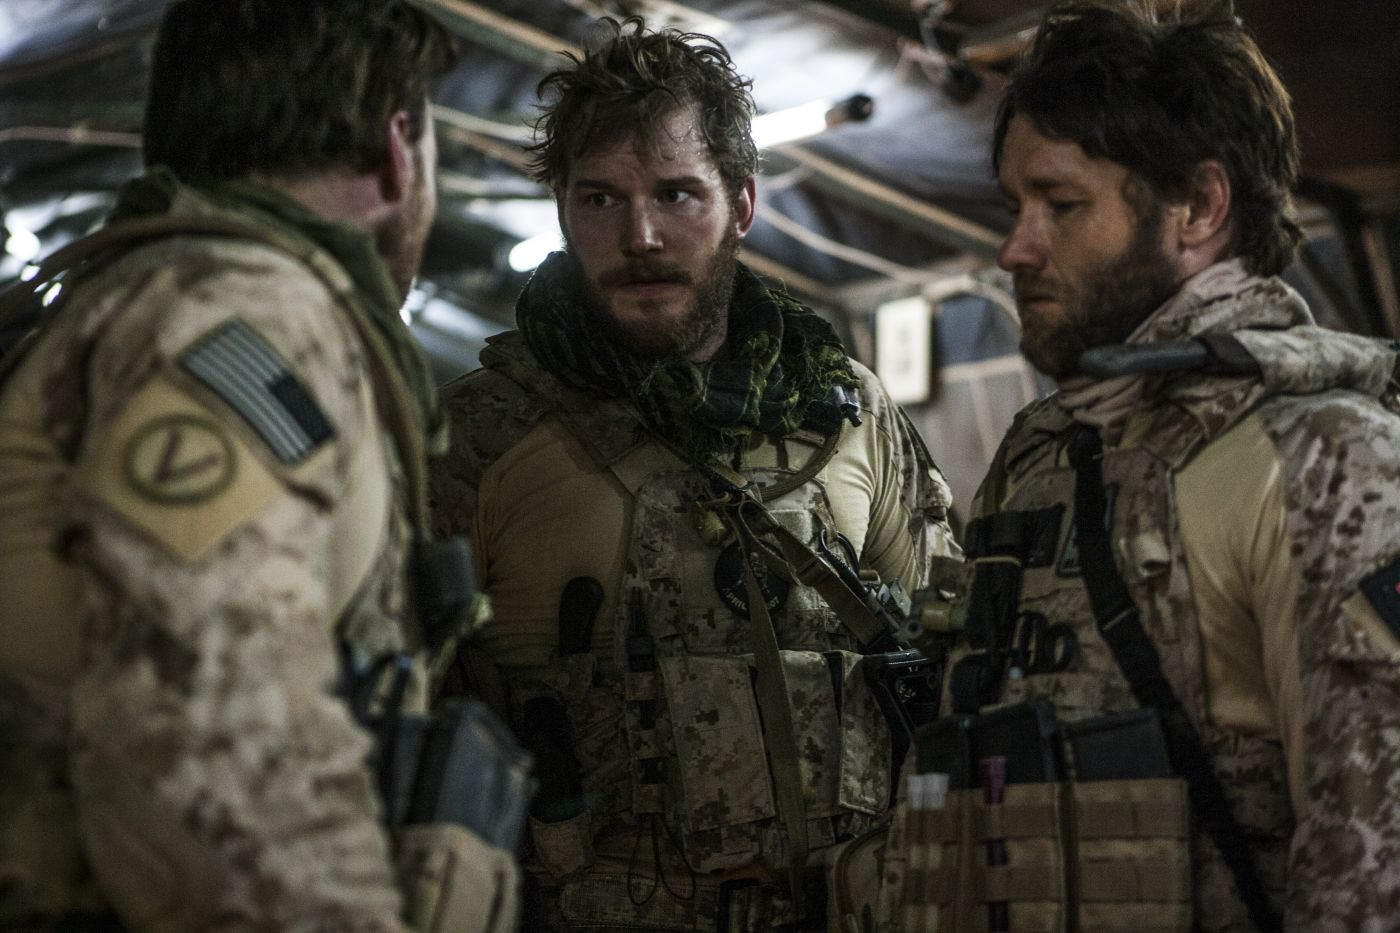 Ashvegas movie review: Zero Dark Thirty